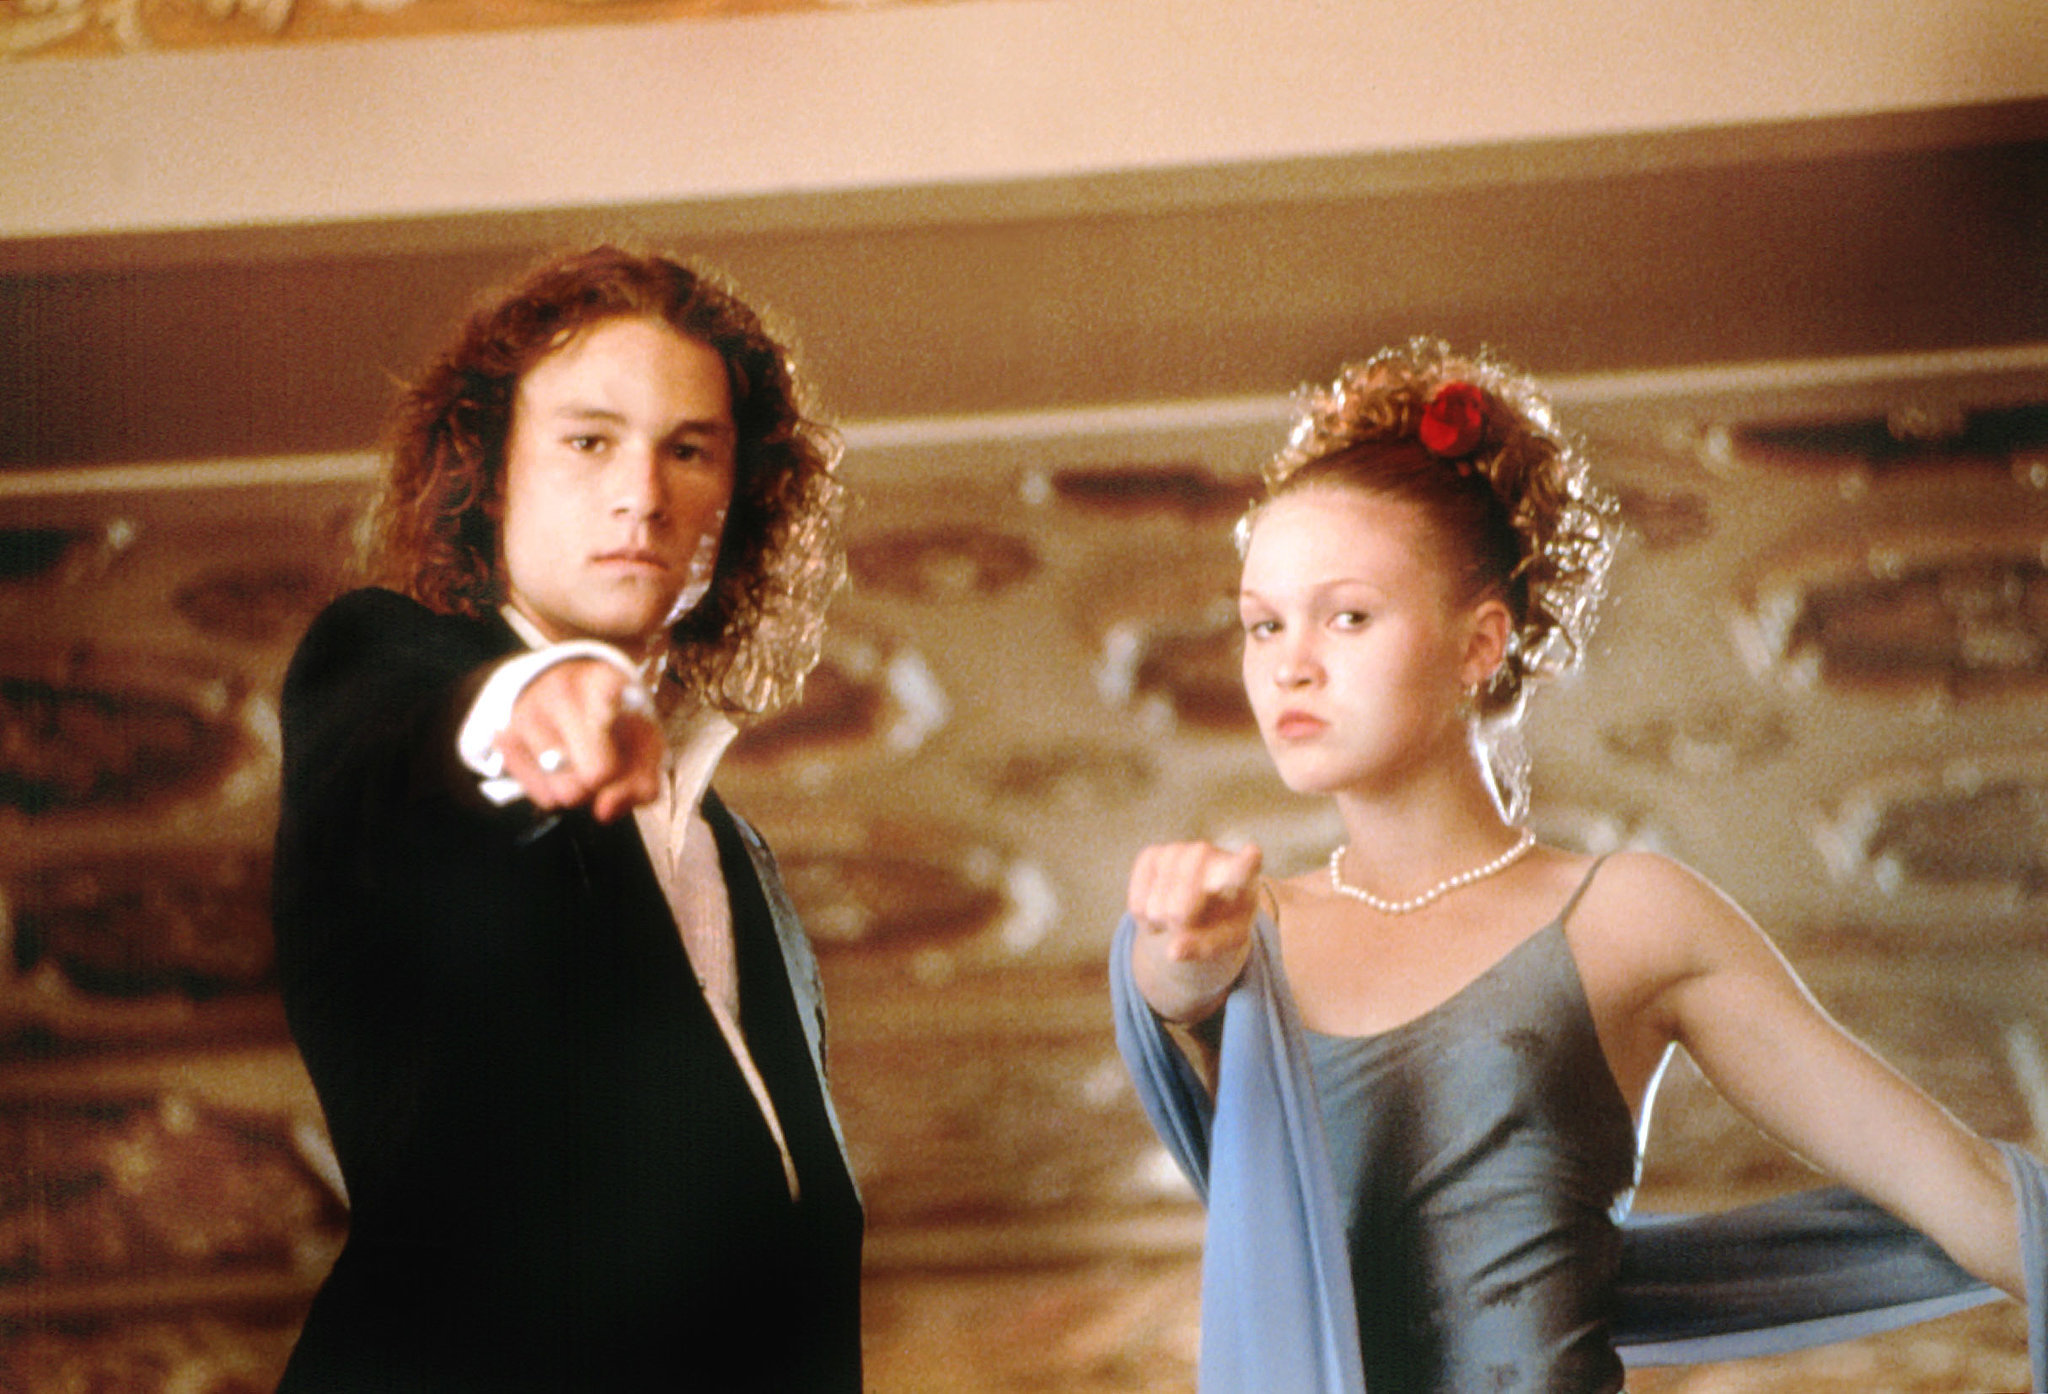 Ten Things I Hate About You: These Are The 15 Movies From